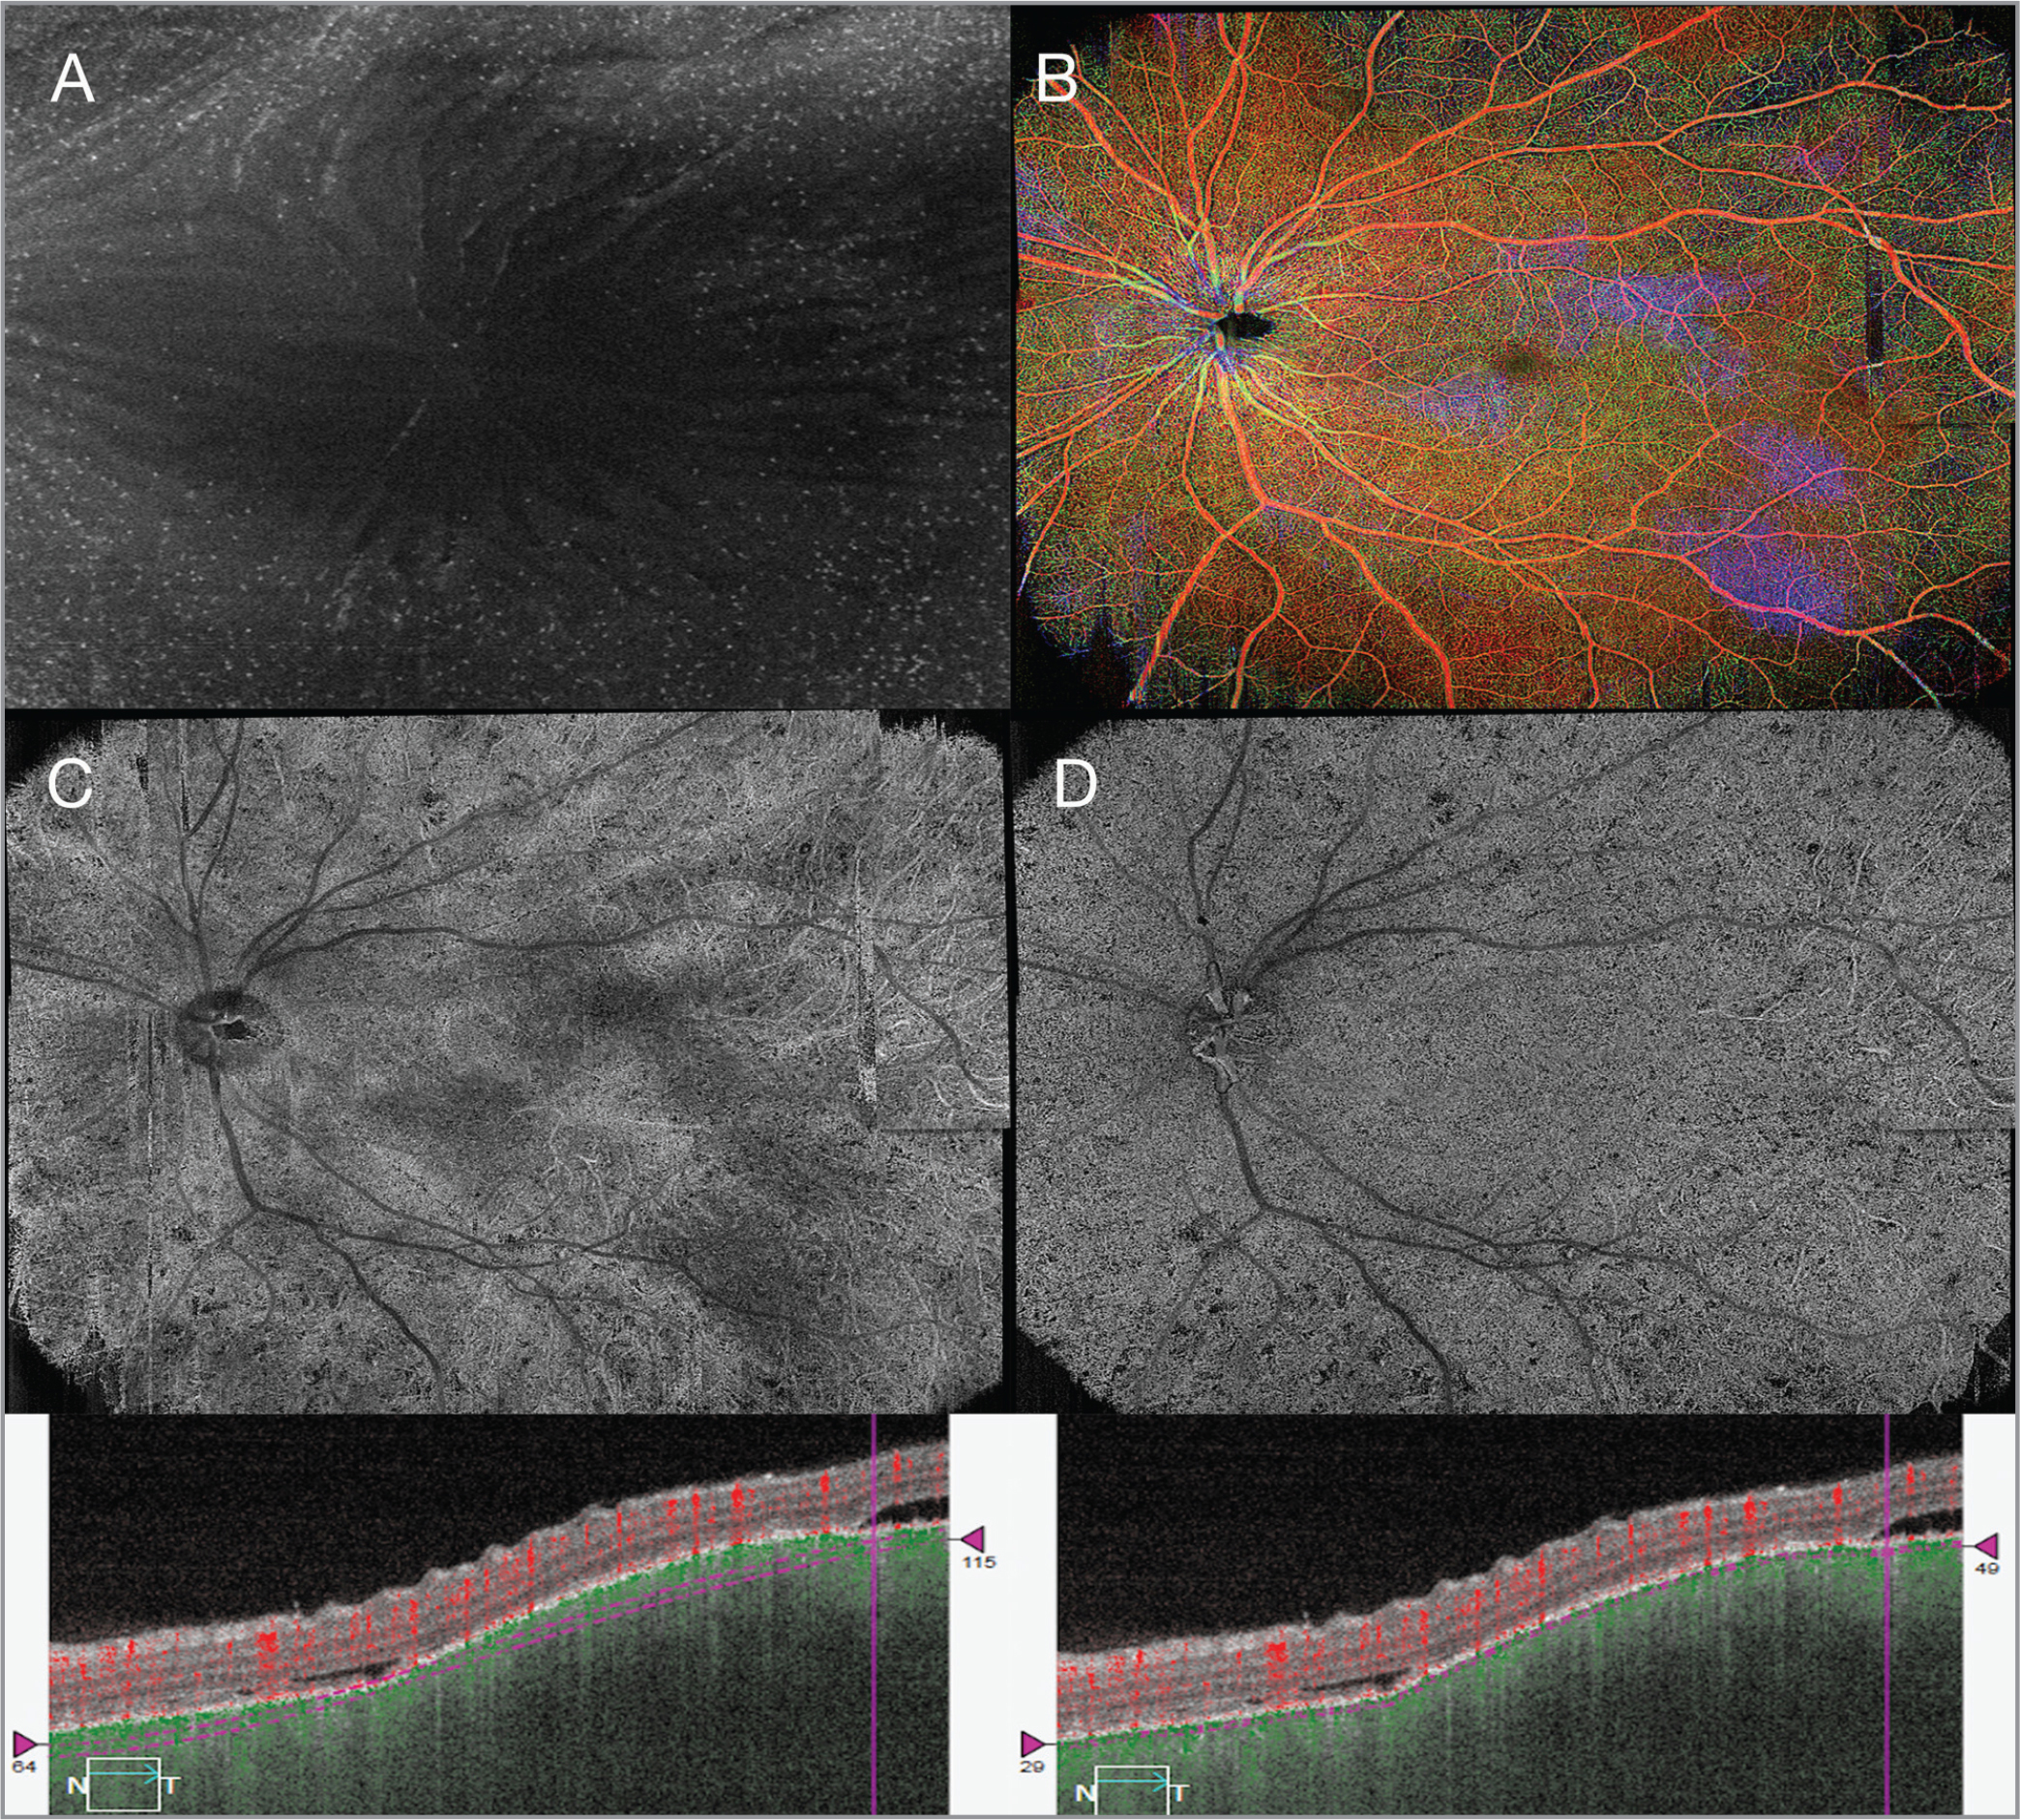 Widefield swept-source optical coherence tomography angiography showing (A) 6 mm x 6 mm image of the vitreoretinal interface showing vitreous cells, (B) retina depth-encoded images with extensive areas of multifocal exudative retinal detachments (RDs), (C) choroid layer with focal hypoperfusion areas and signal attenuation artifacts form the overlying RDs with respective B-scan, and (D) choriocapillaris with characteristic areas of flow void and respective B-scan.